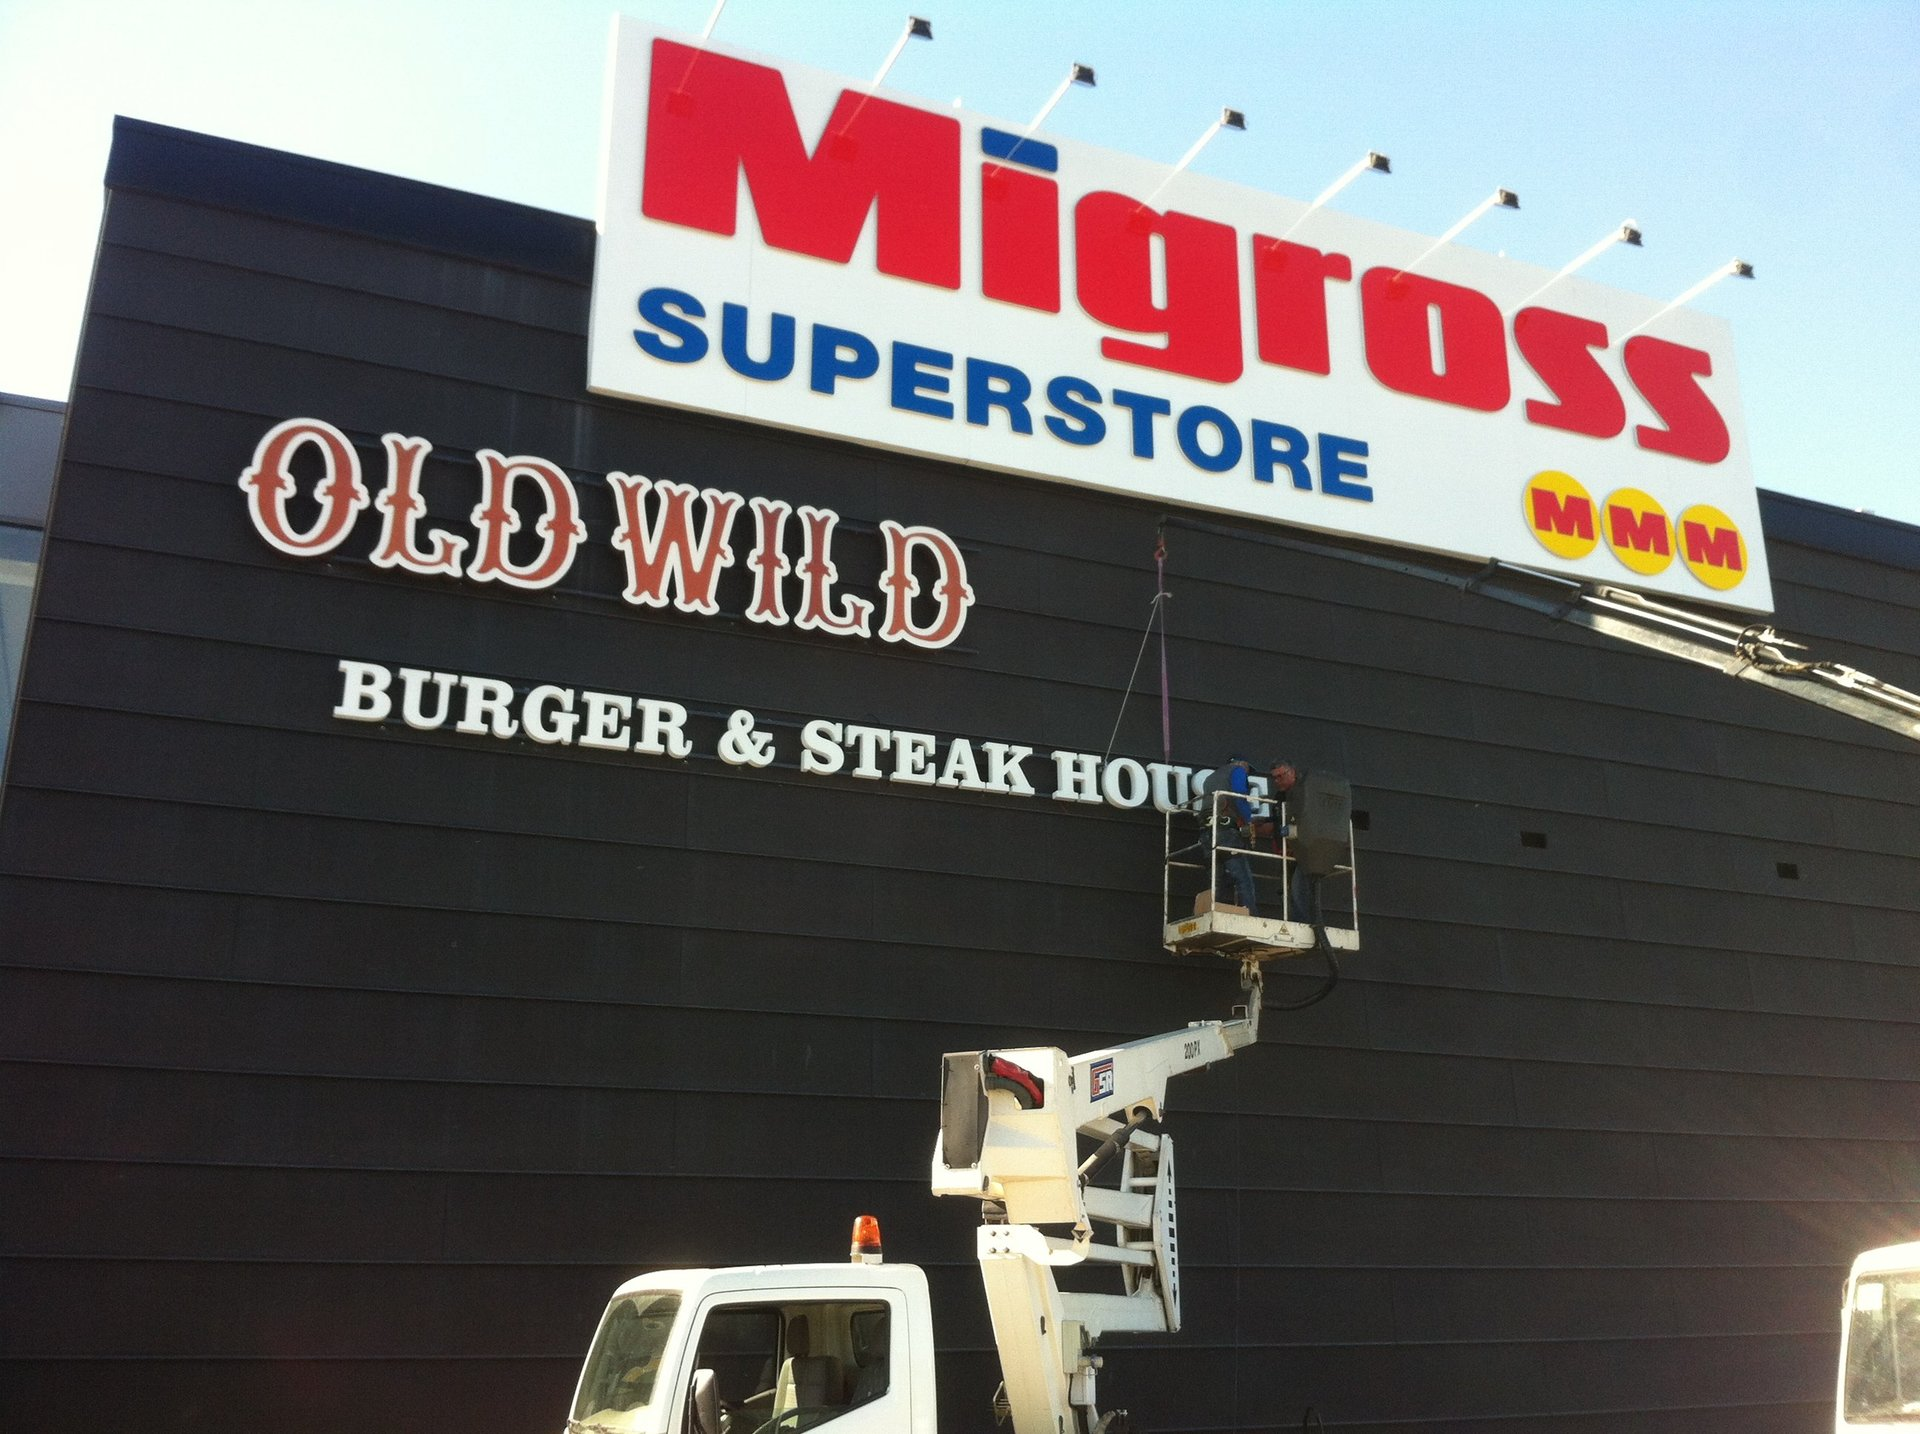 insegne di old wild west e migross superstore